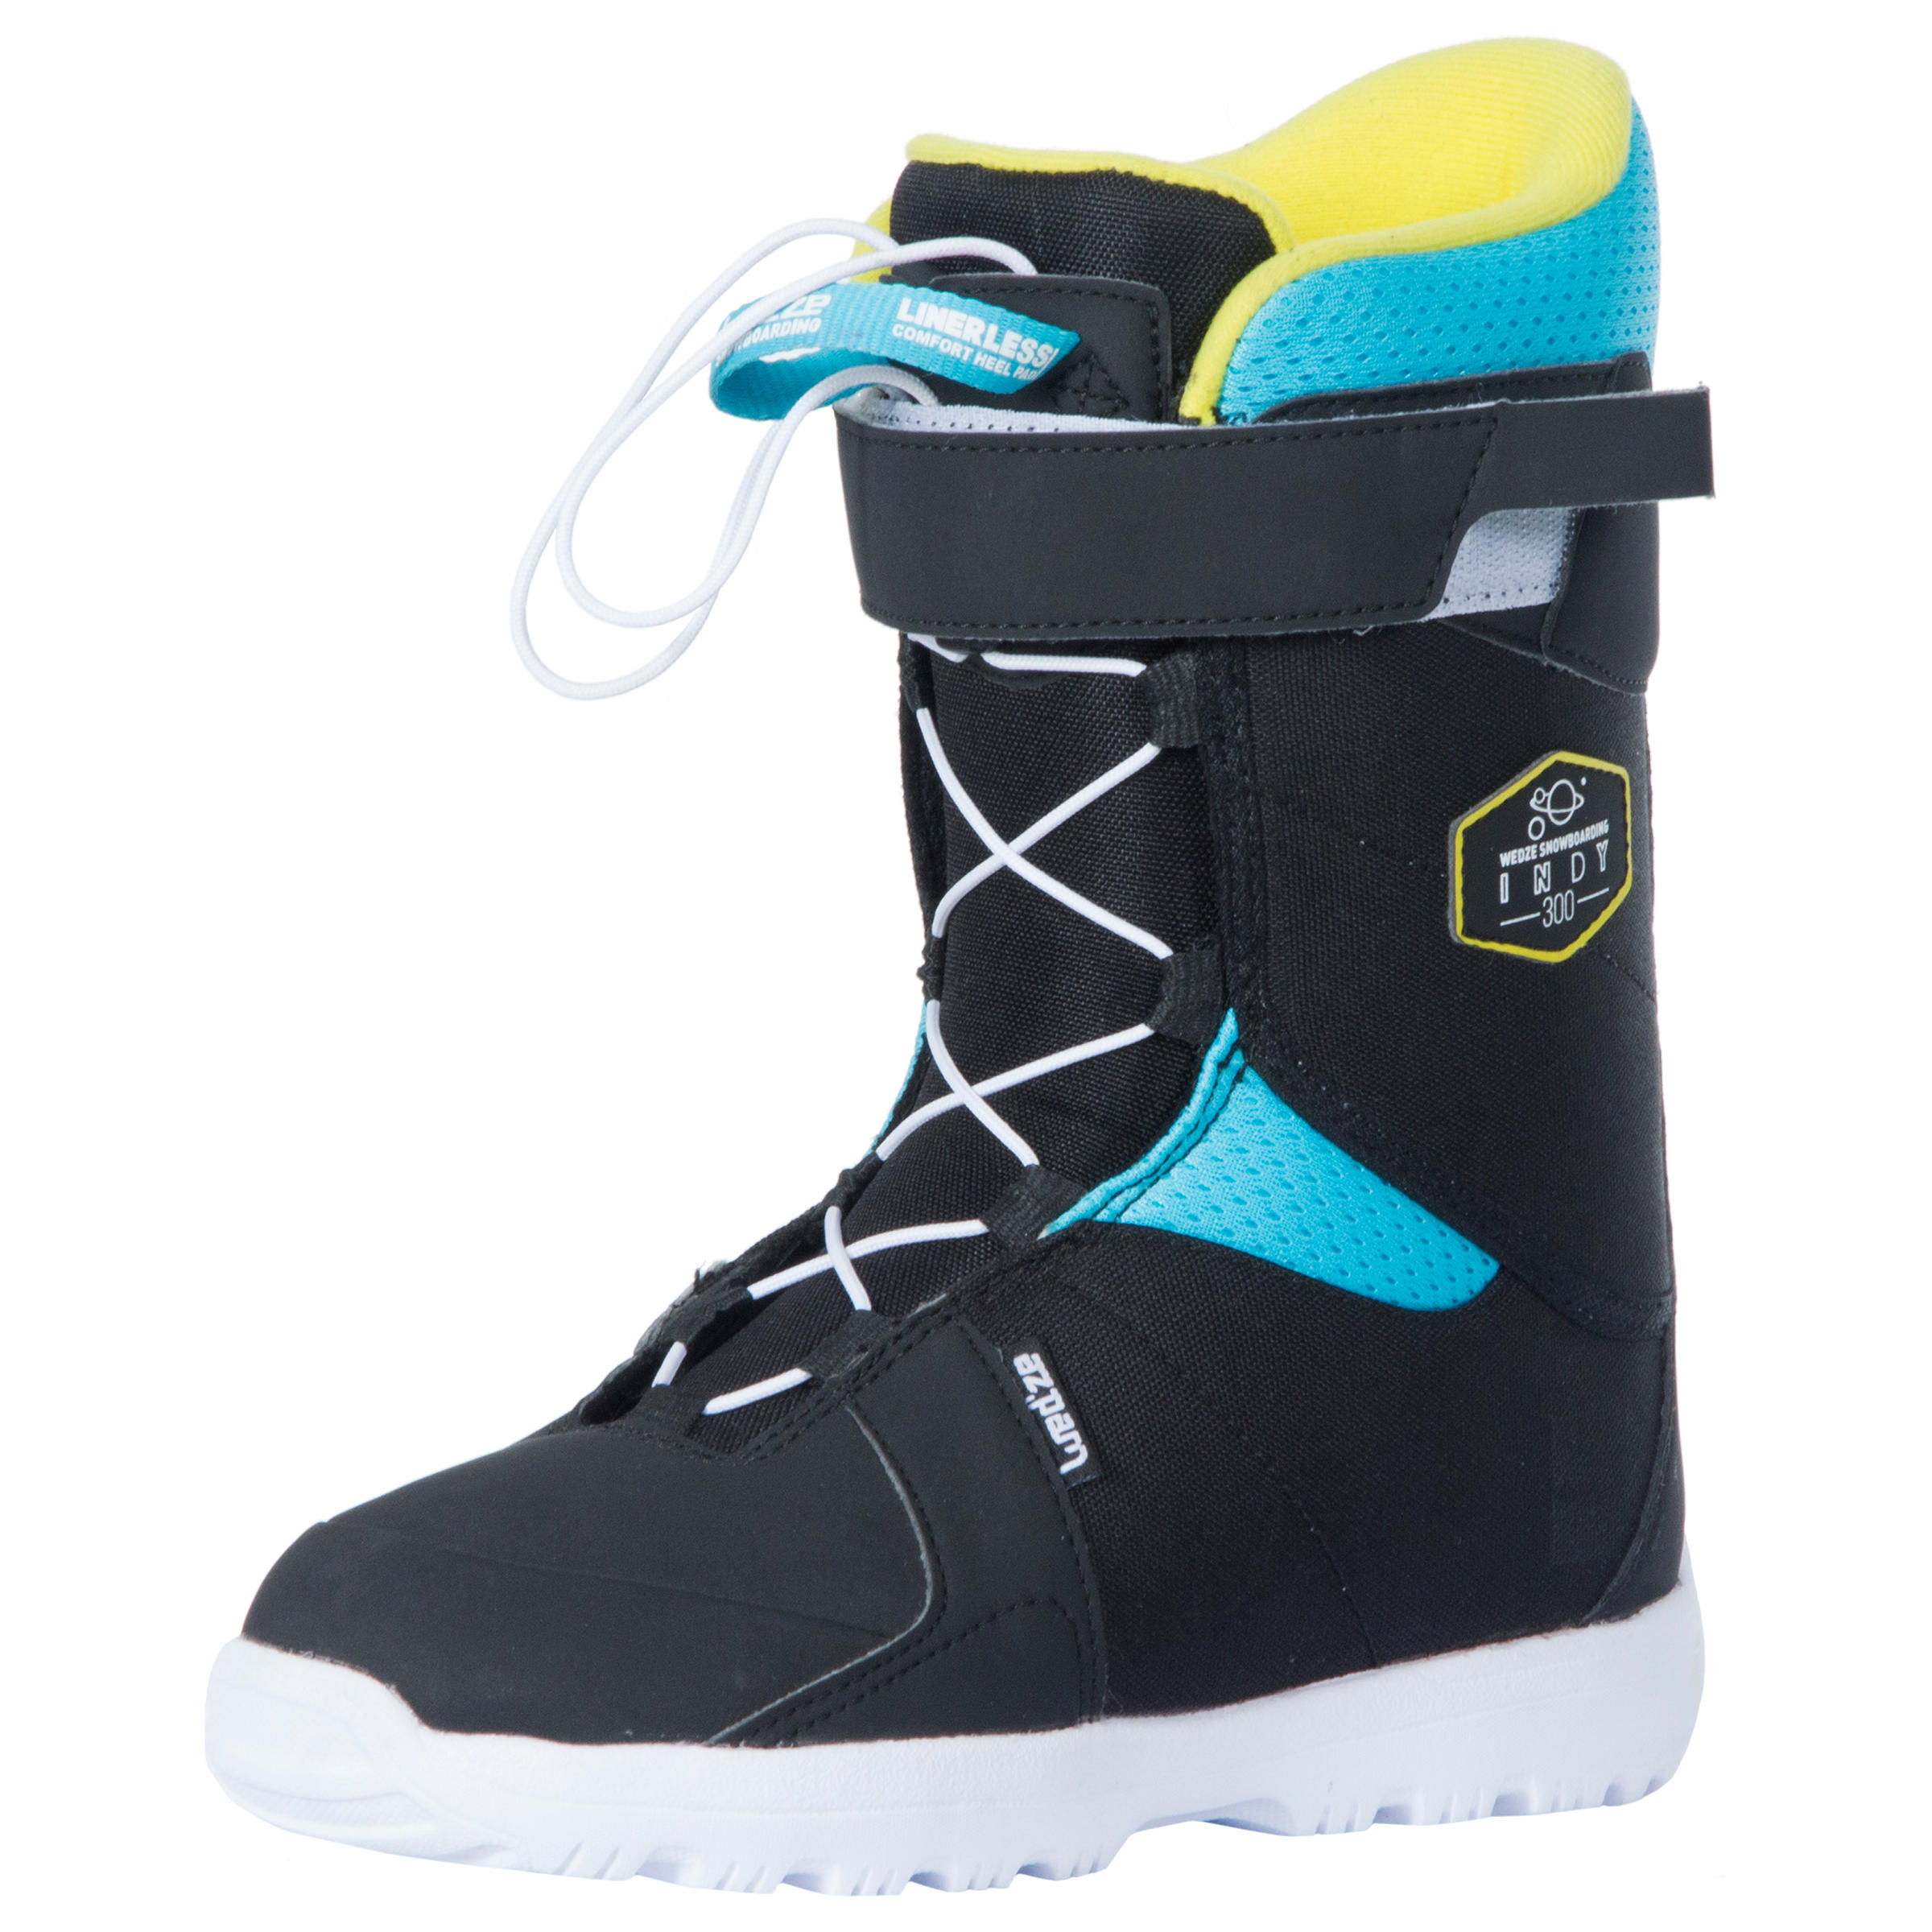 Boots snowboard Indy 300 imagine